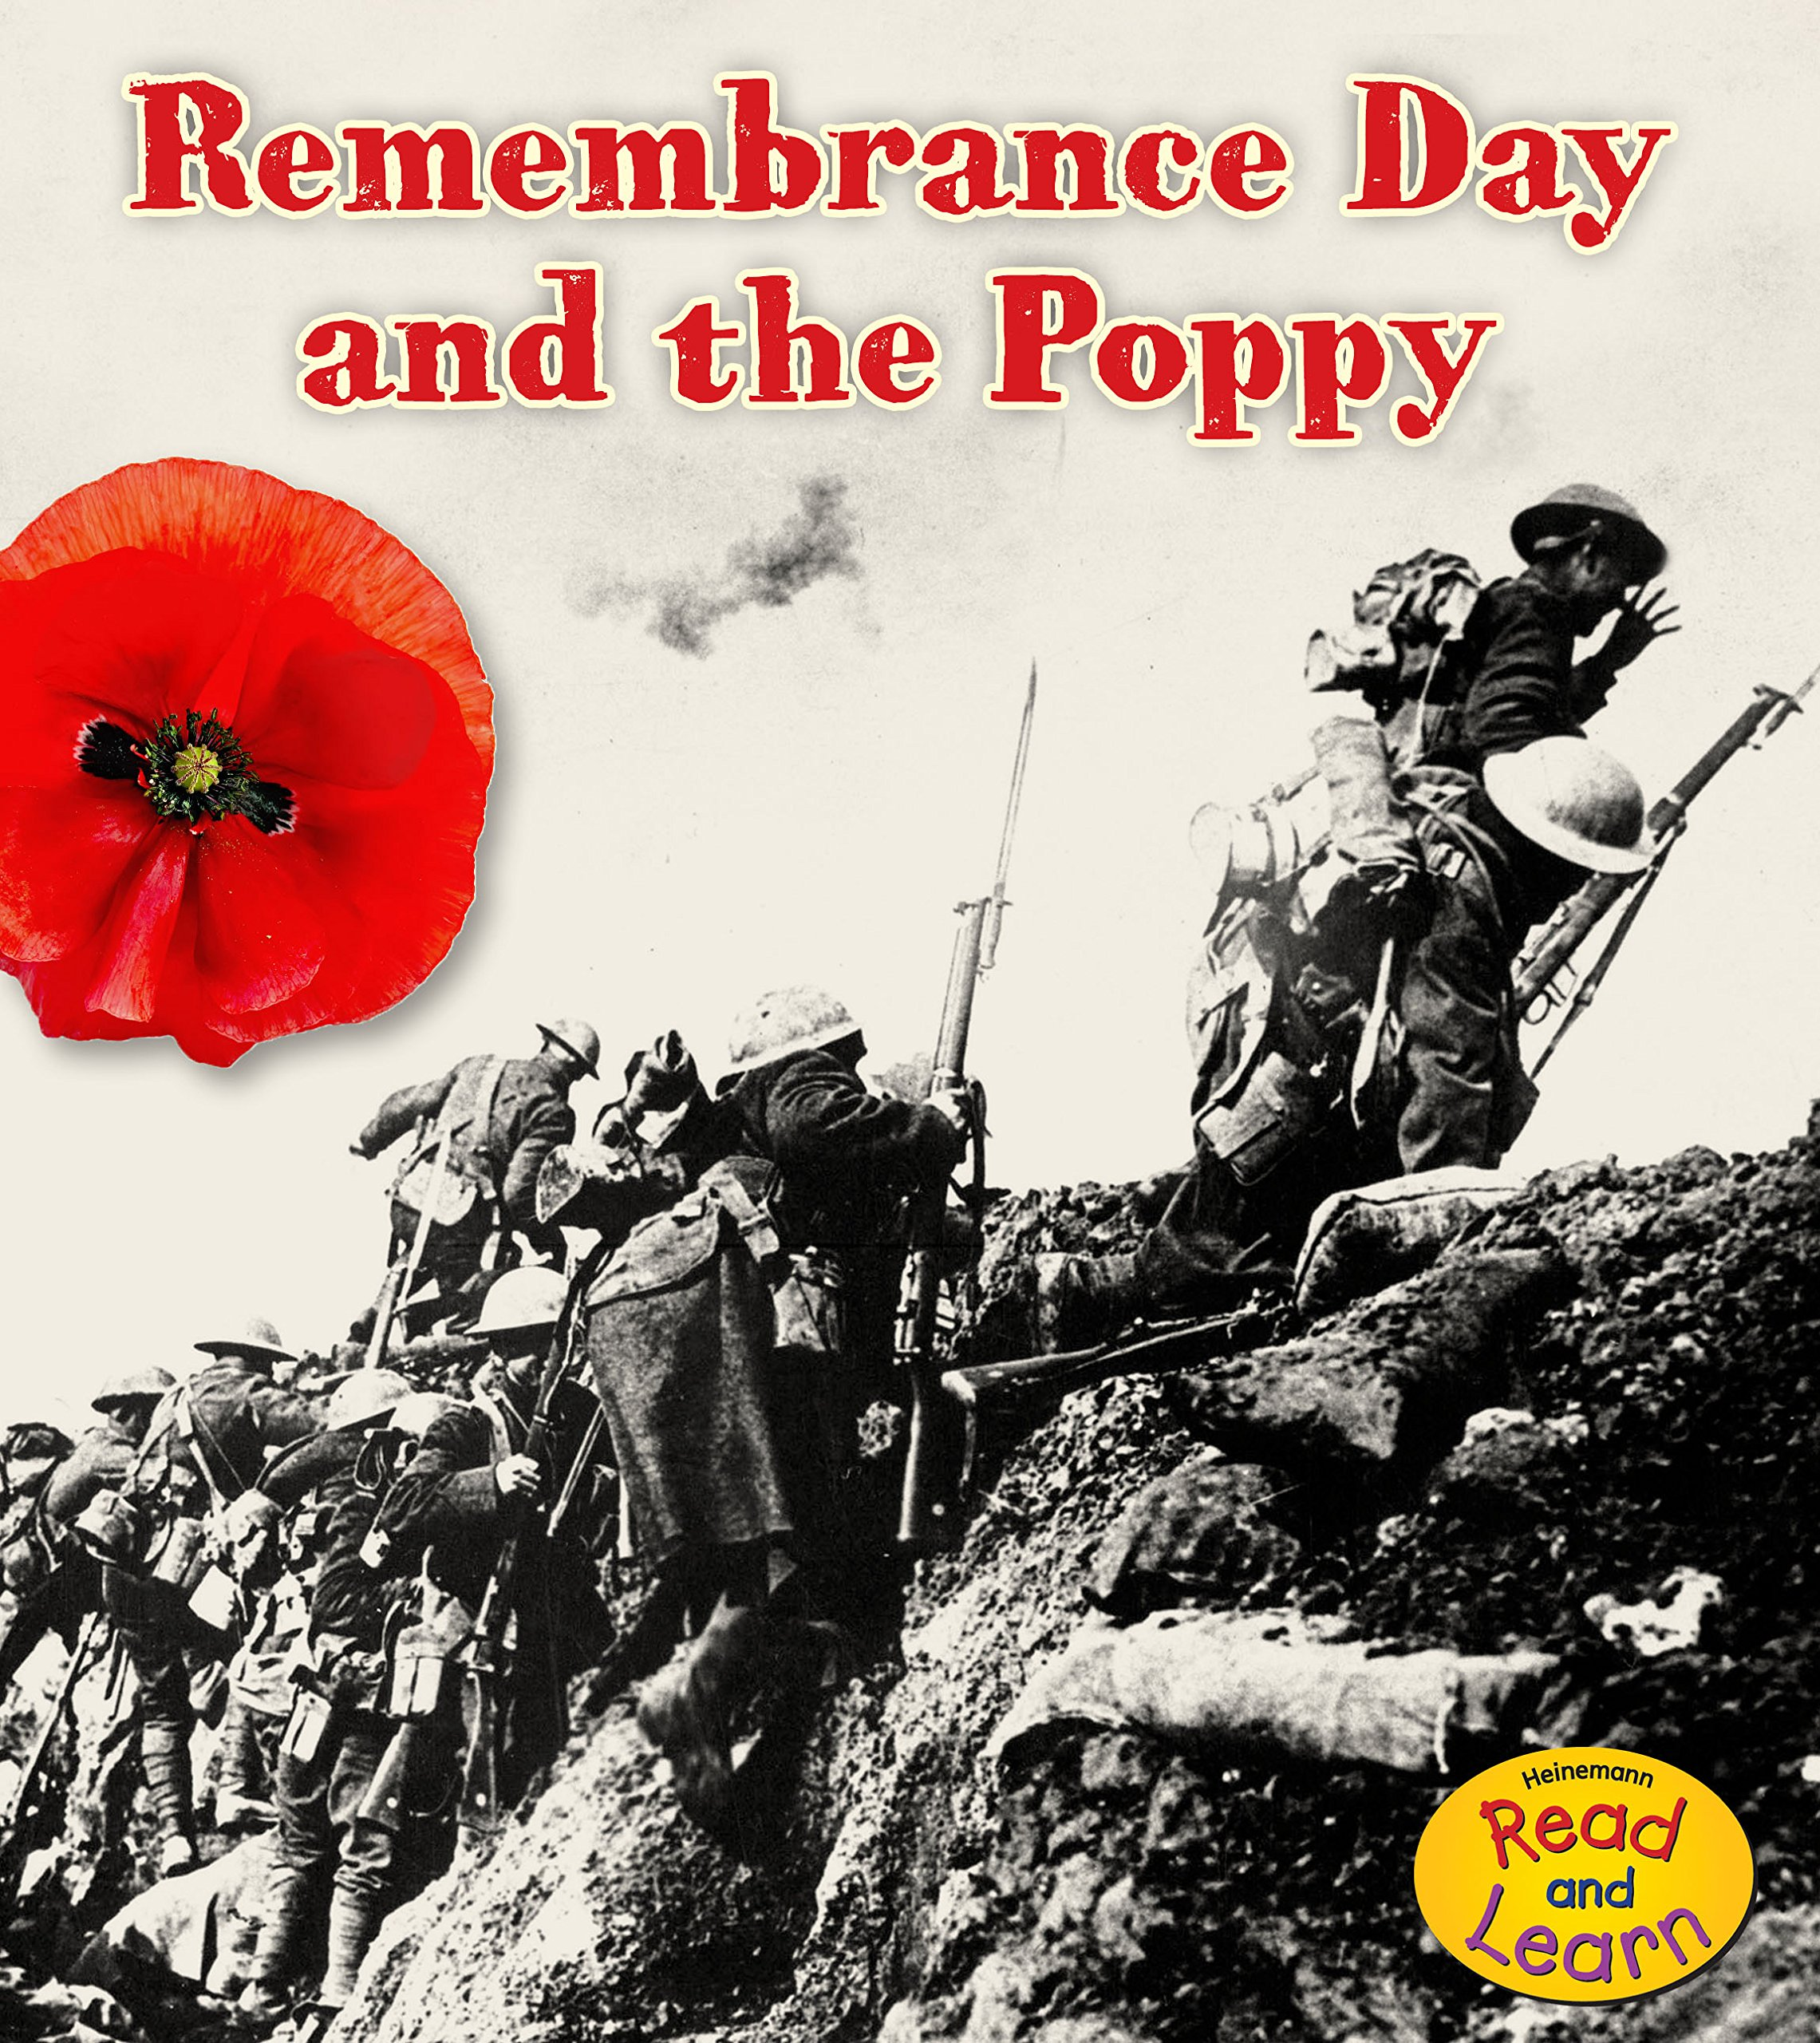 The Remembrance Day and the Poppy (Important Events in History)